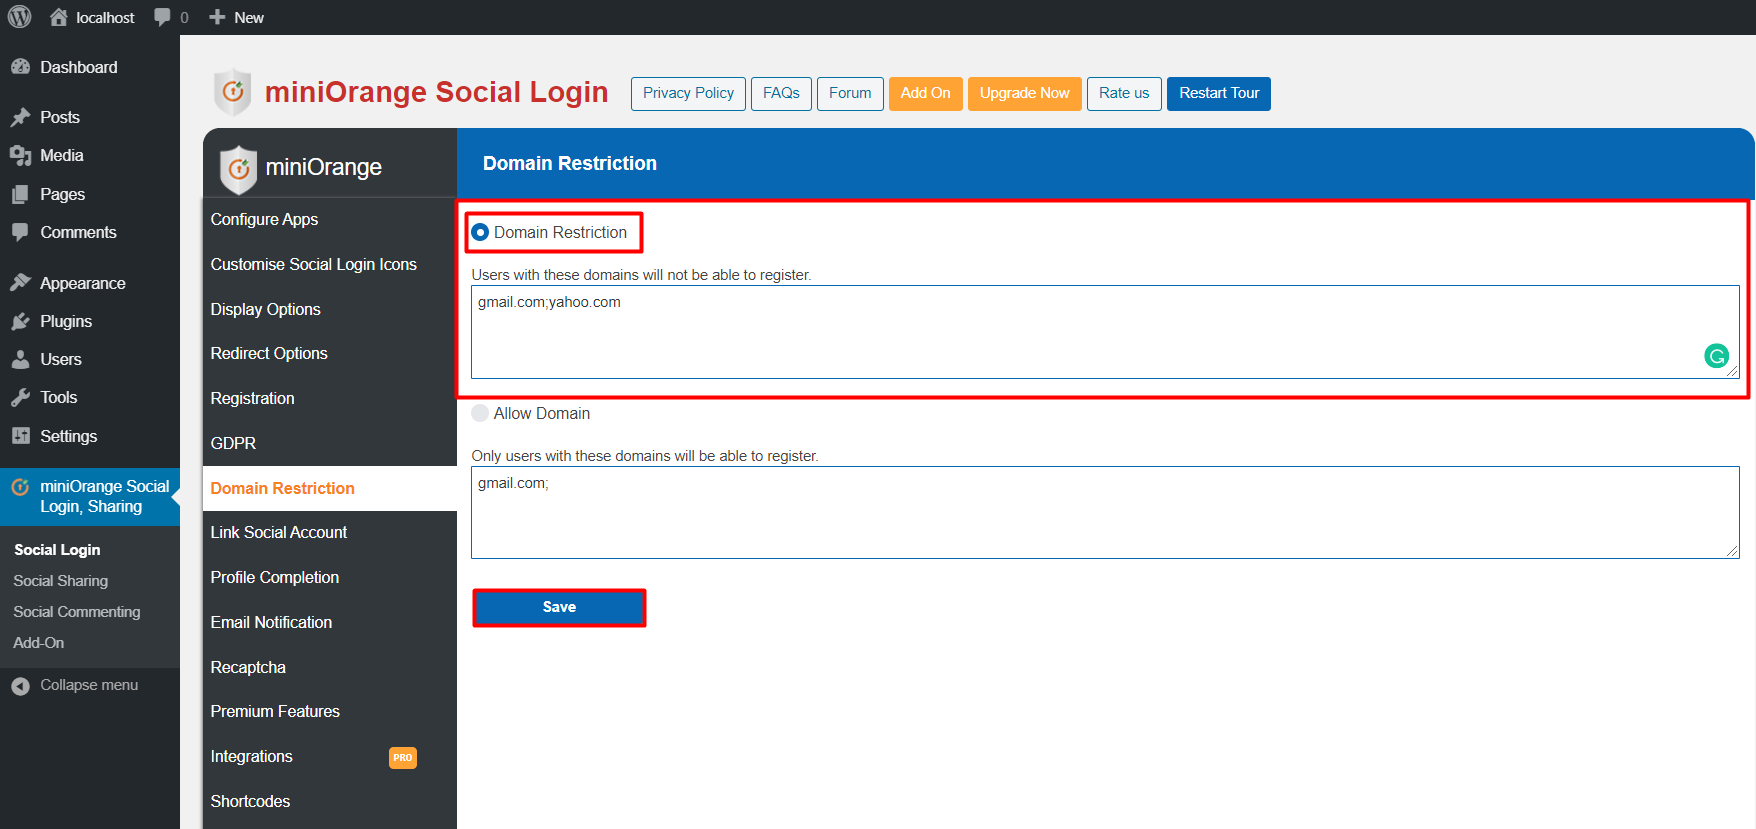 Add domain name in Domain Restriction